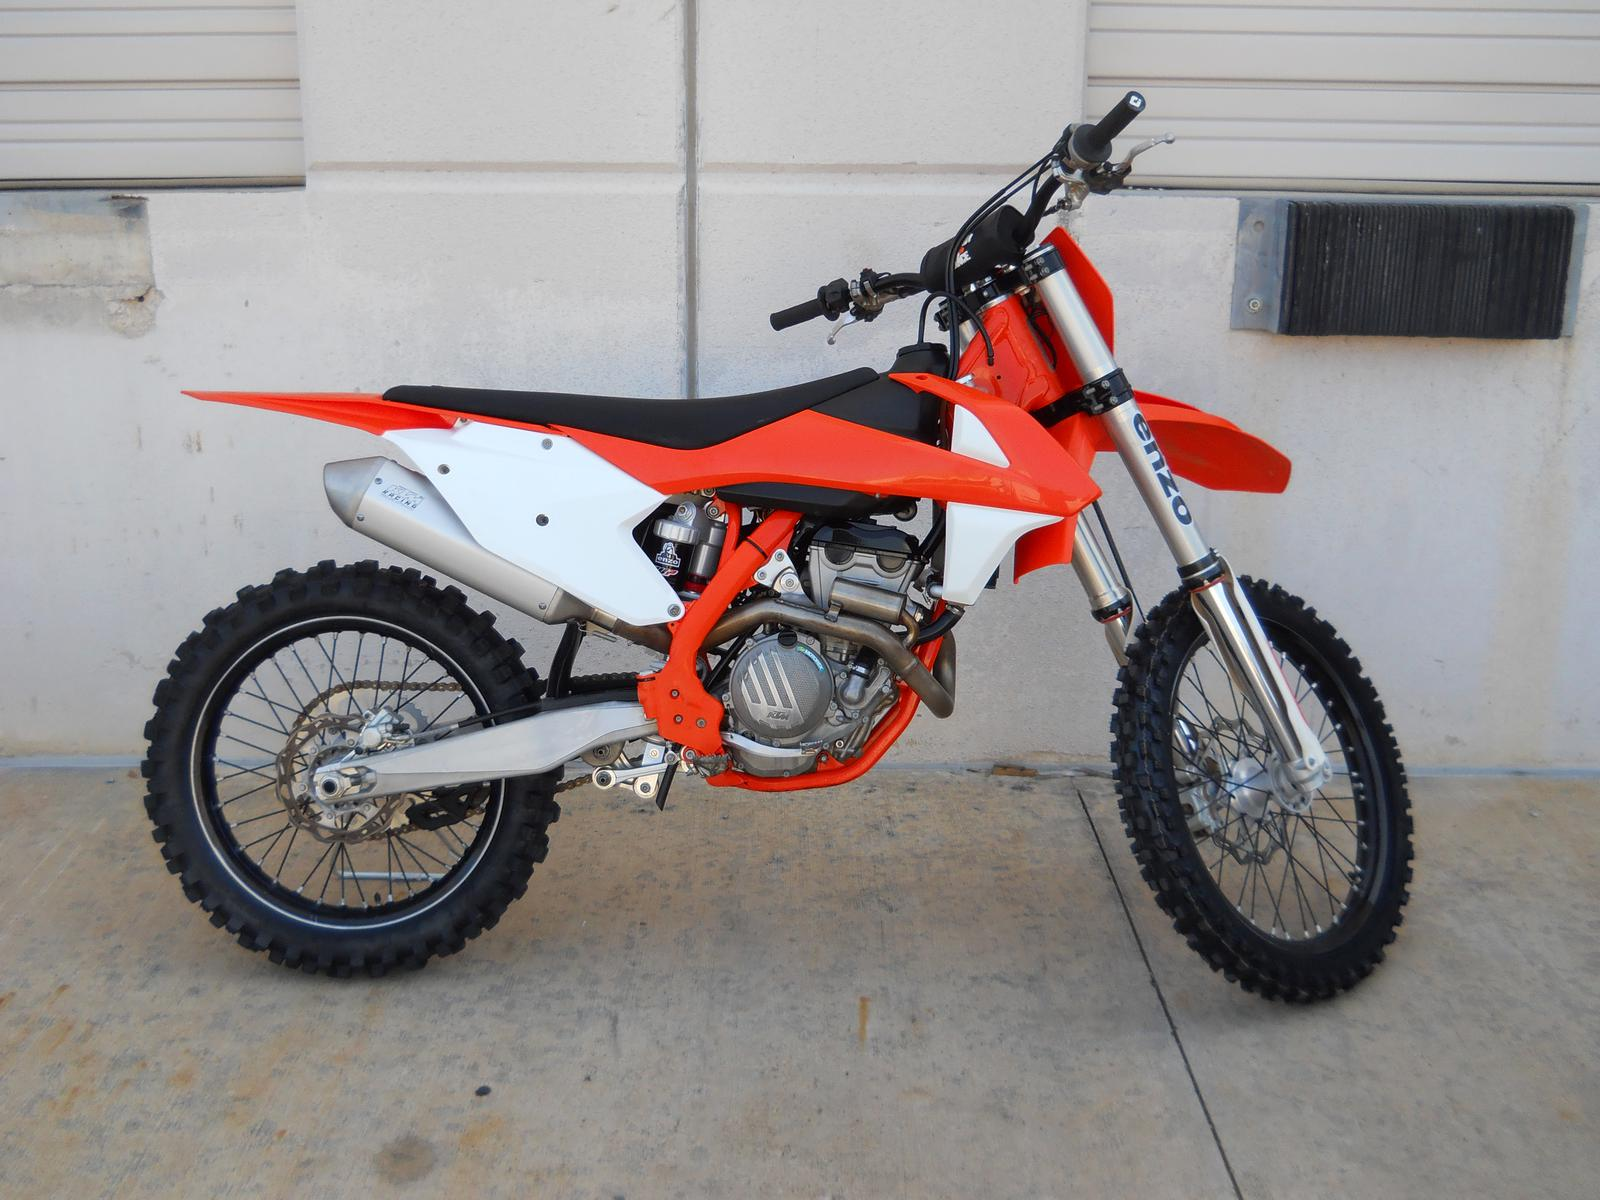 Ktm 250 Motorcycles For Sale South Jersey >> 2018 Ktm 250 Sx F For Sale In Austin Tx Tj S Cycle Sales